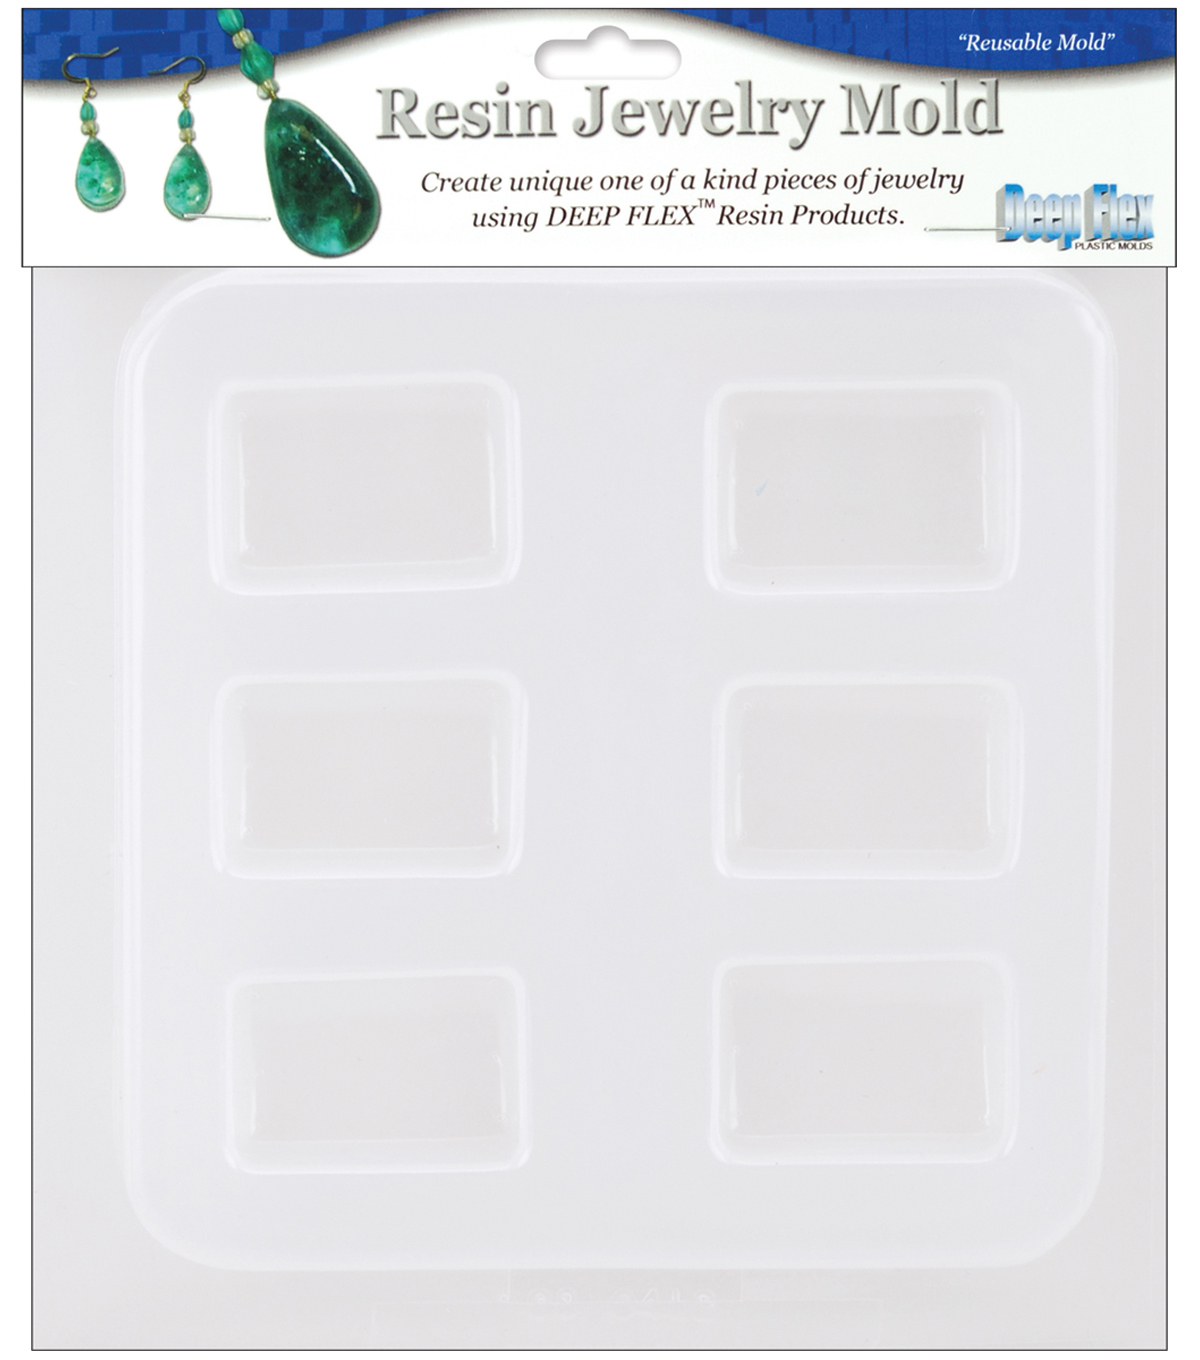 Yaley Resin Jewelry Reusable Plastic Mold 6-1/2\u0022x7\u0022-Rectangles 6 Shapes